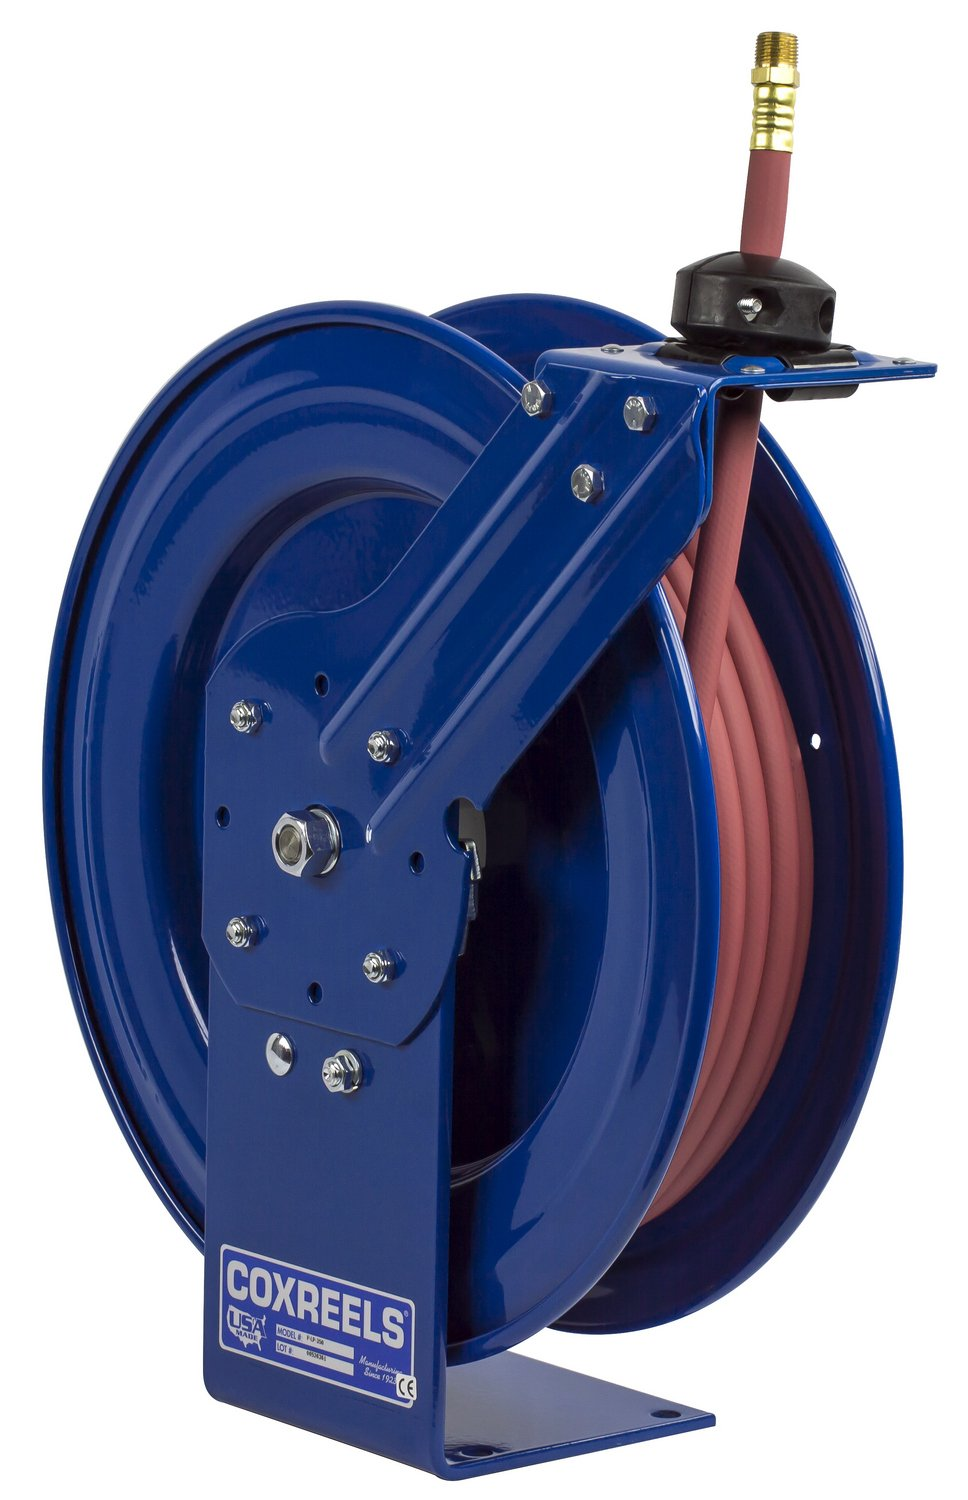 Coxreels P-LP-350 Low Pressure Retractable Air/Water Hose Reel: 3/8'' I.D., 50' Hose Capacity, with hose, 300 PSI, Made in USA